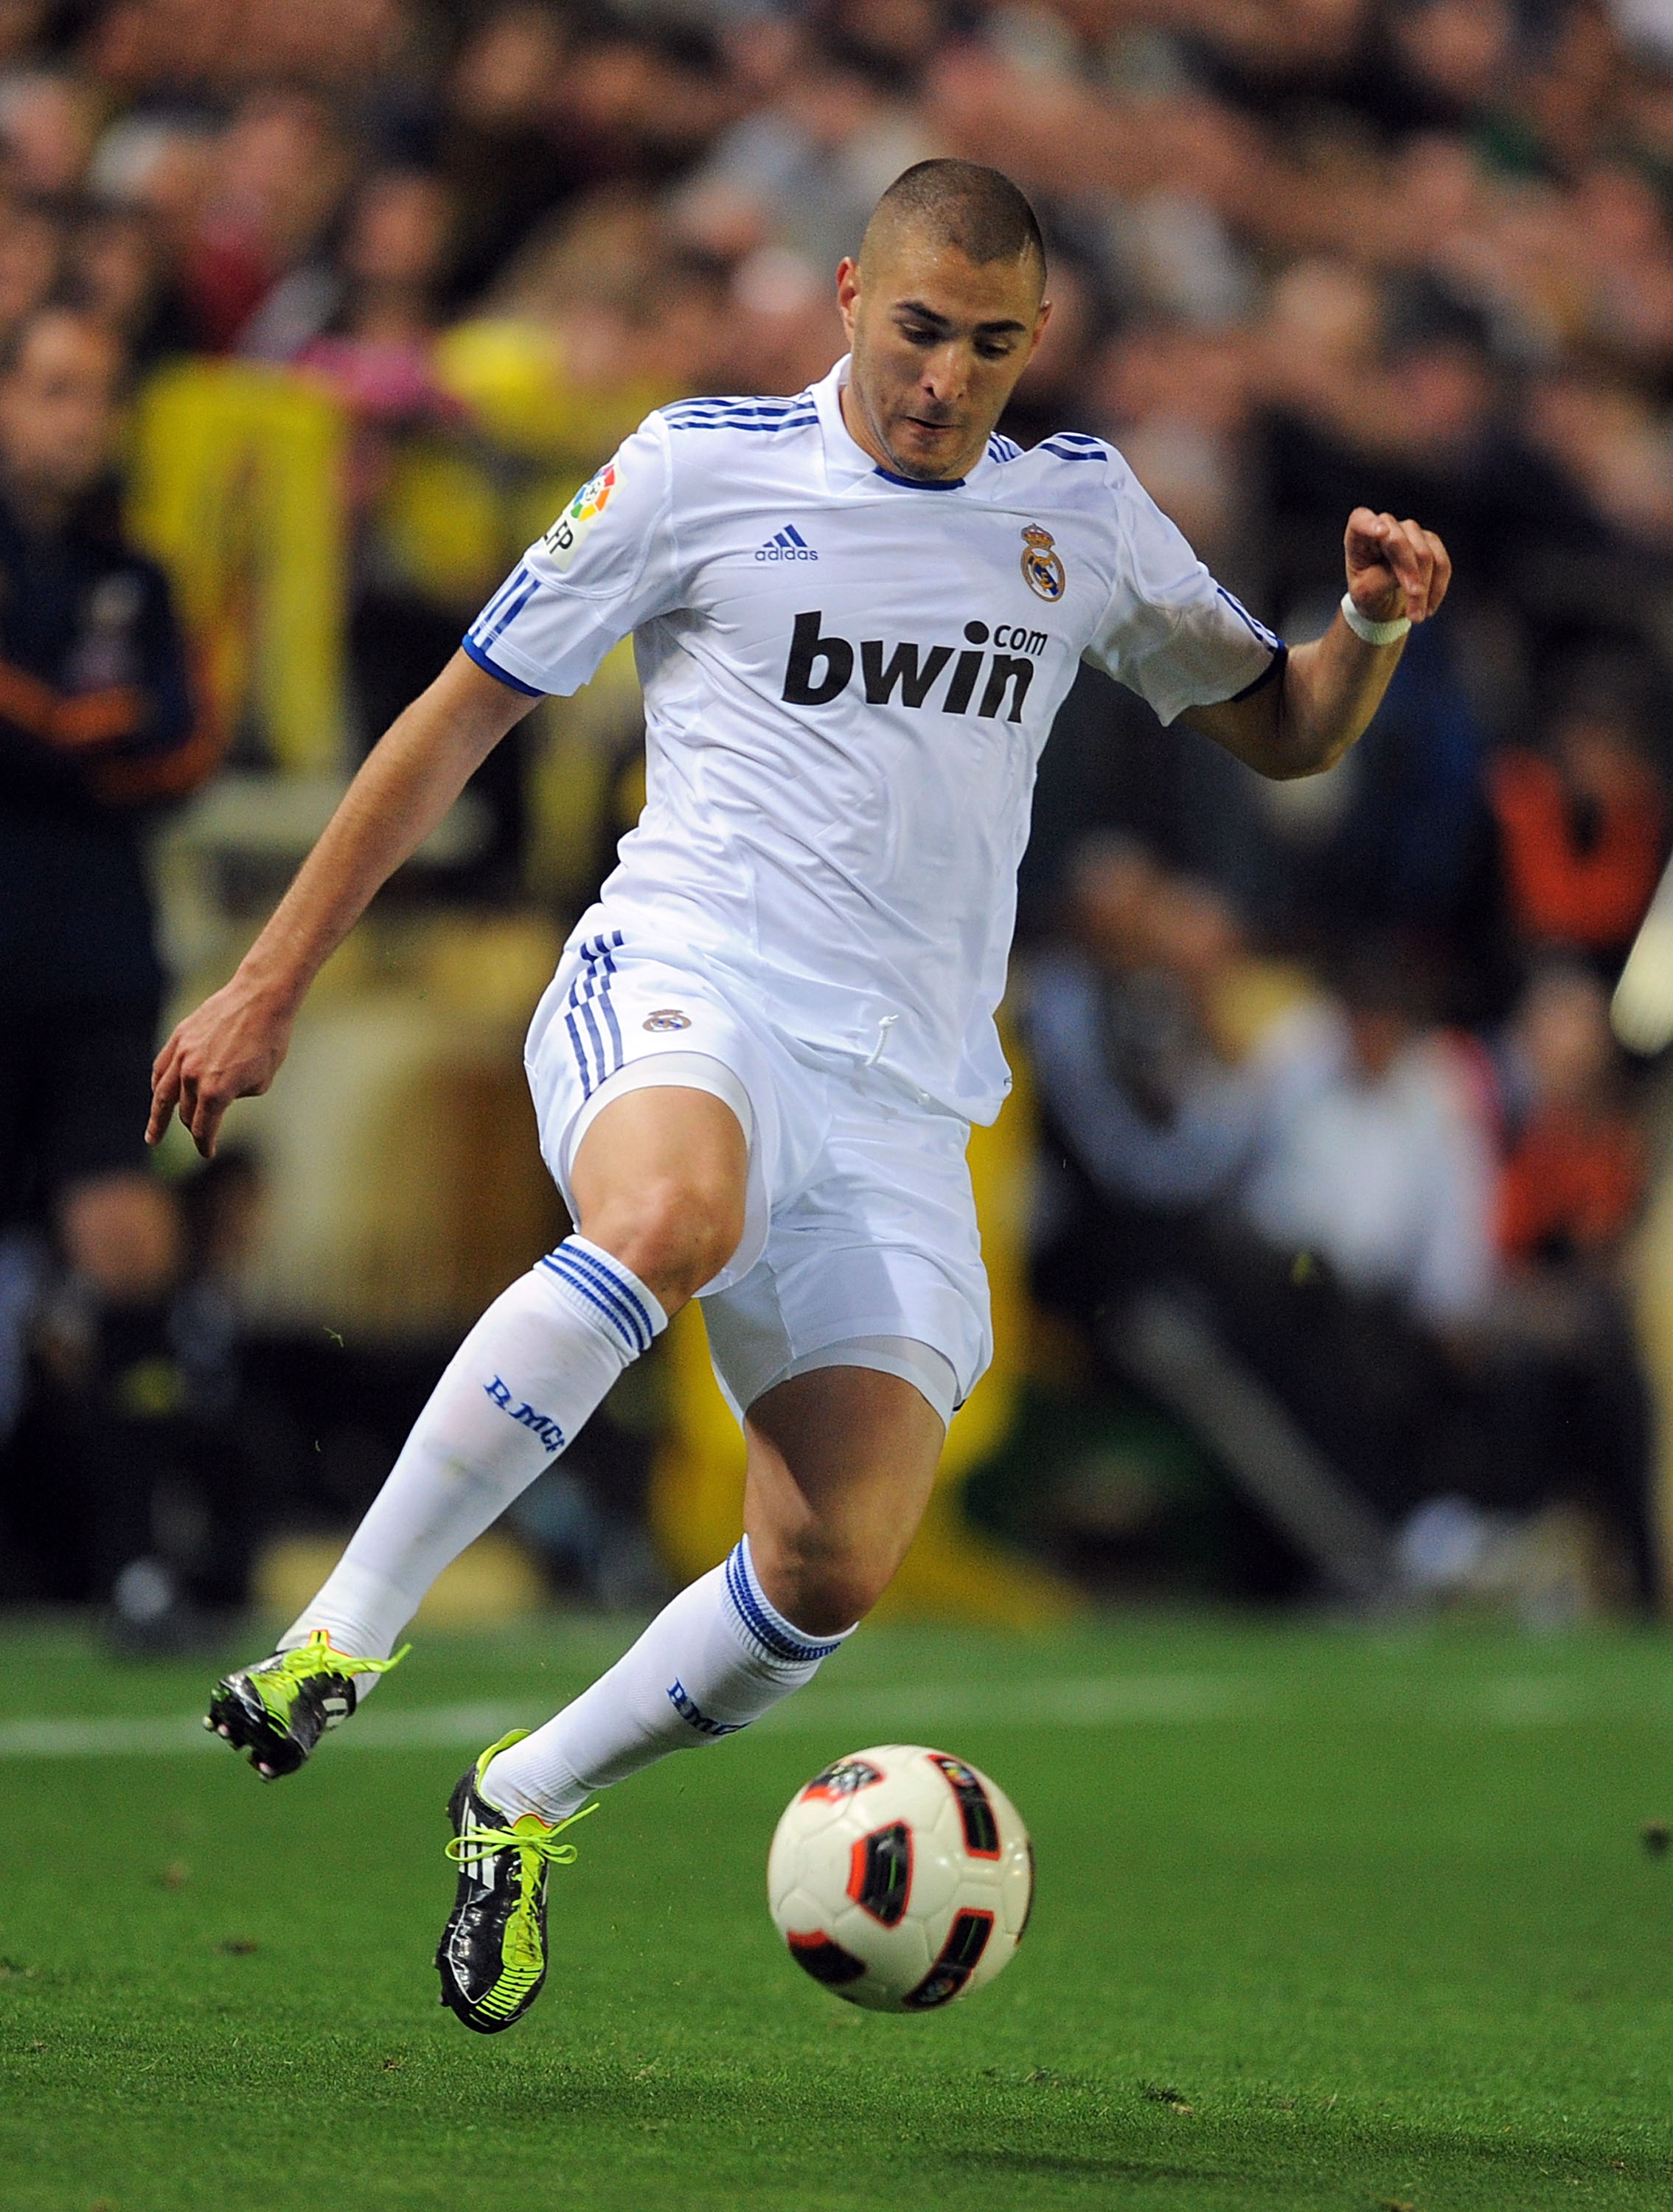 VILLARREAL, SPAIN - MAY 15: Karim Benzema of Real Madrid in action during the La Liga match between Villarreal and Real Madrid at estadio El Madrigal on May 15, 2011 in Villarreal, Spain.  (Photo by Denis Doyle/Getty Images)